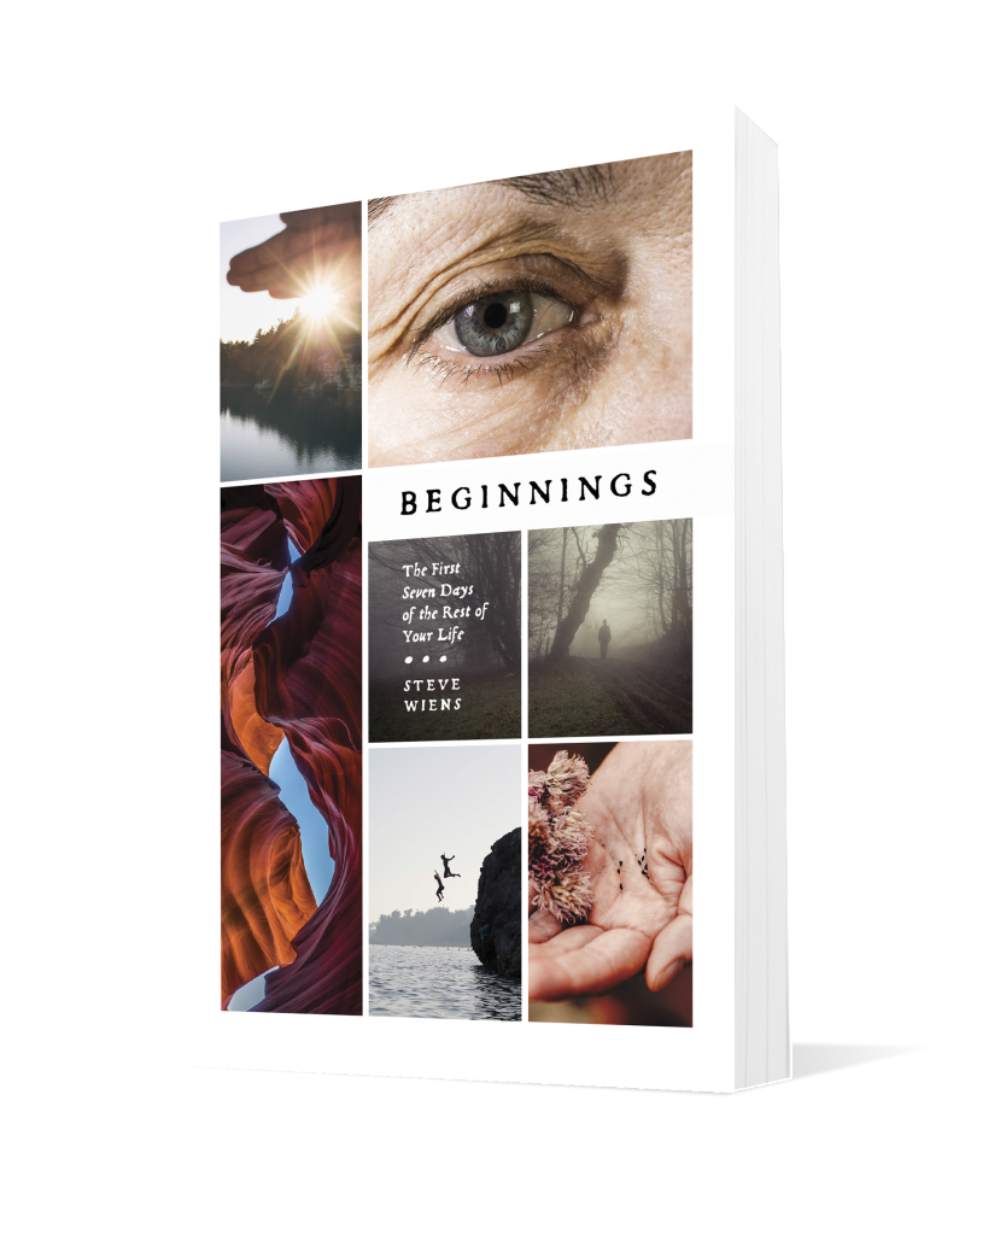 Beginnings book